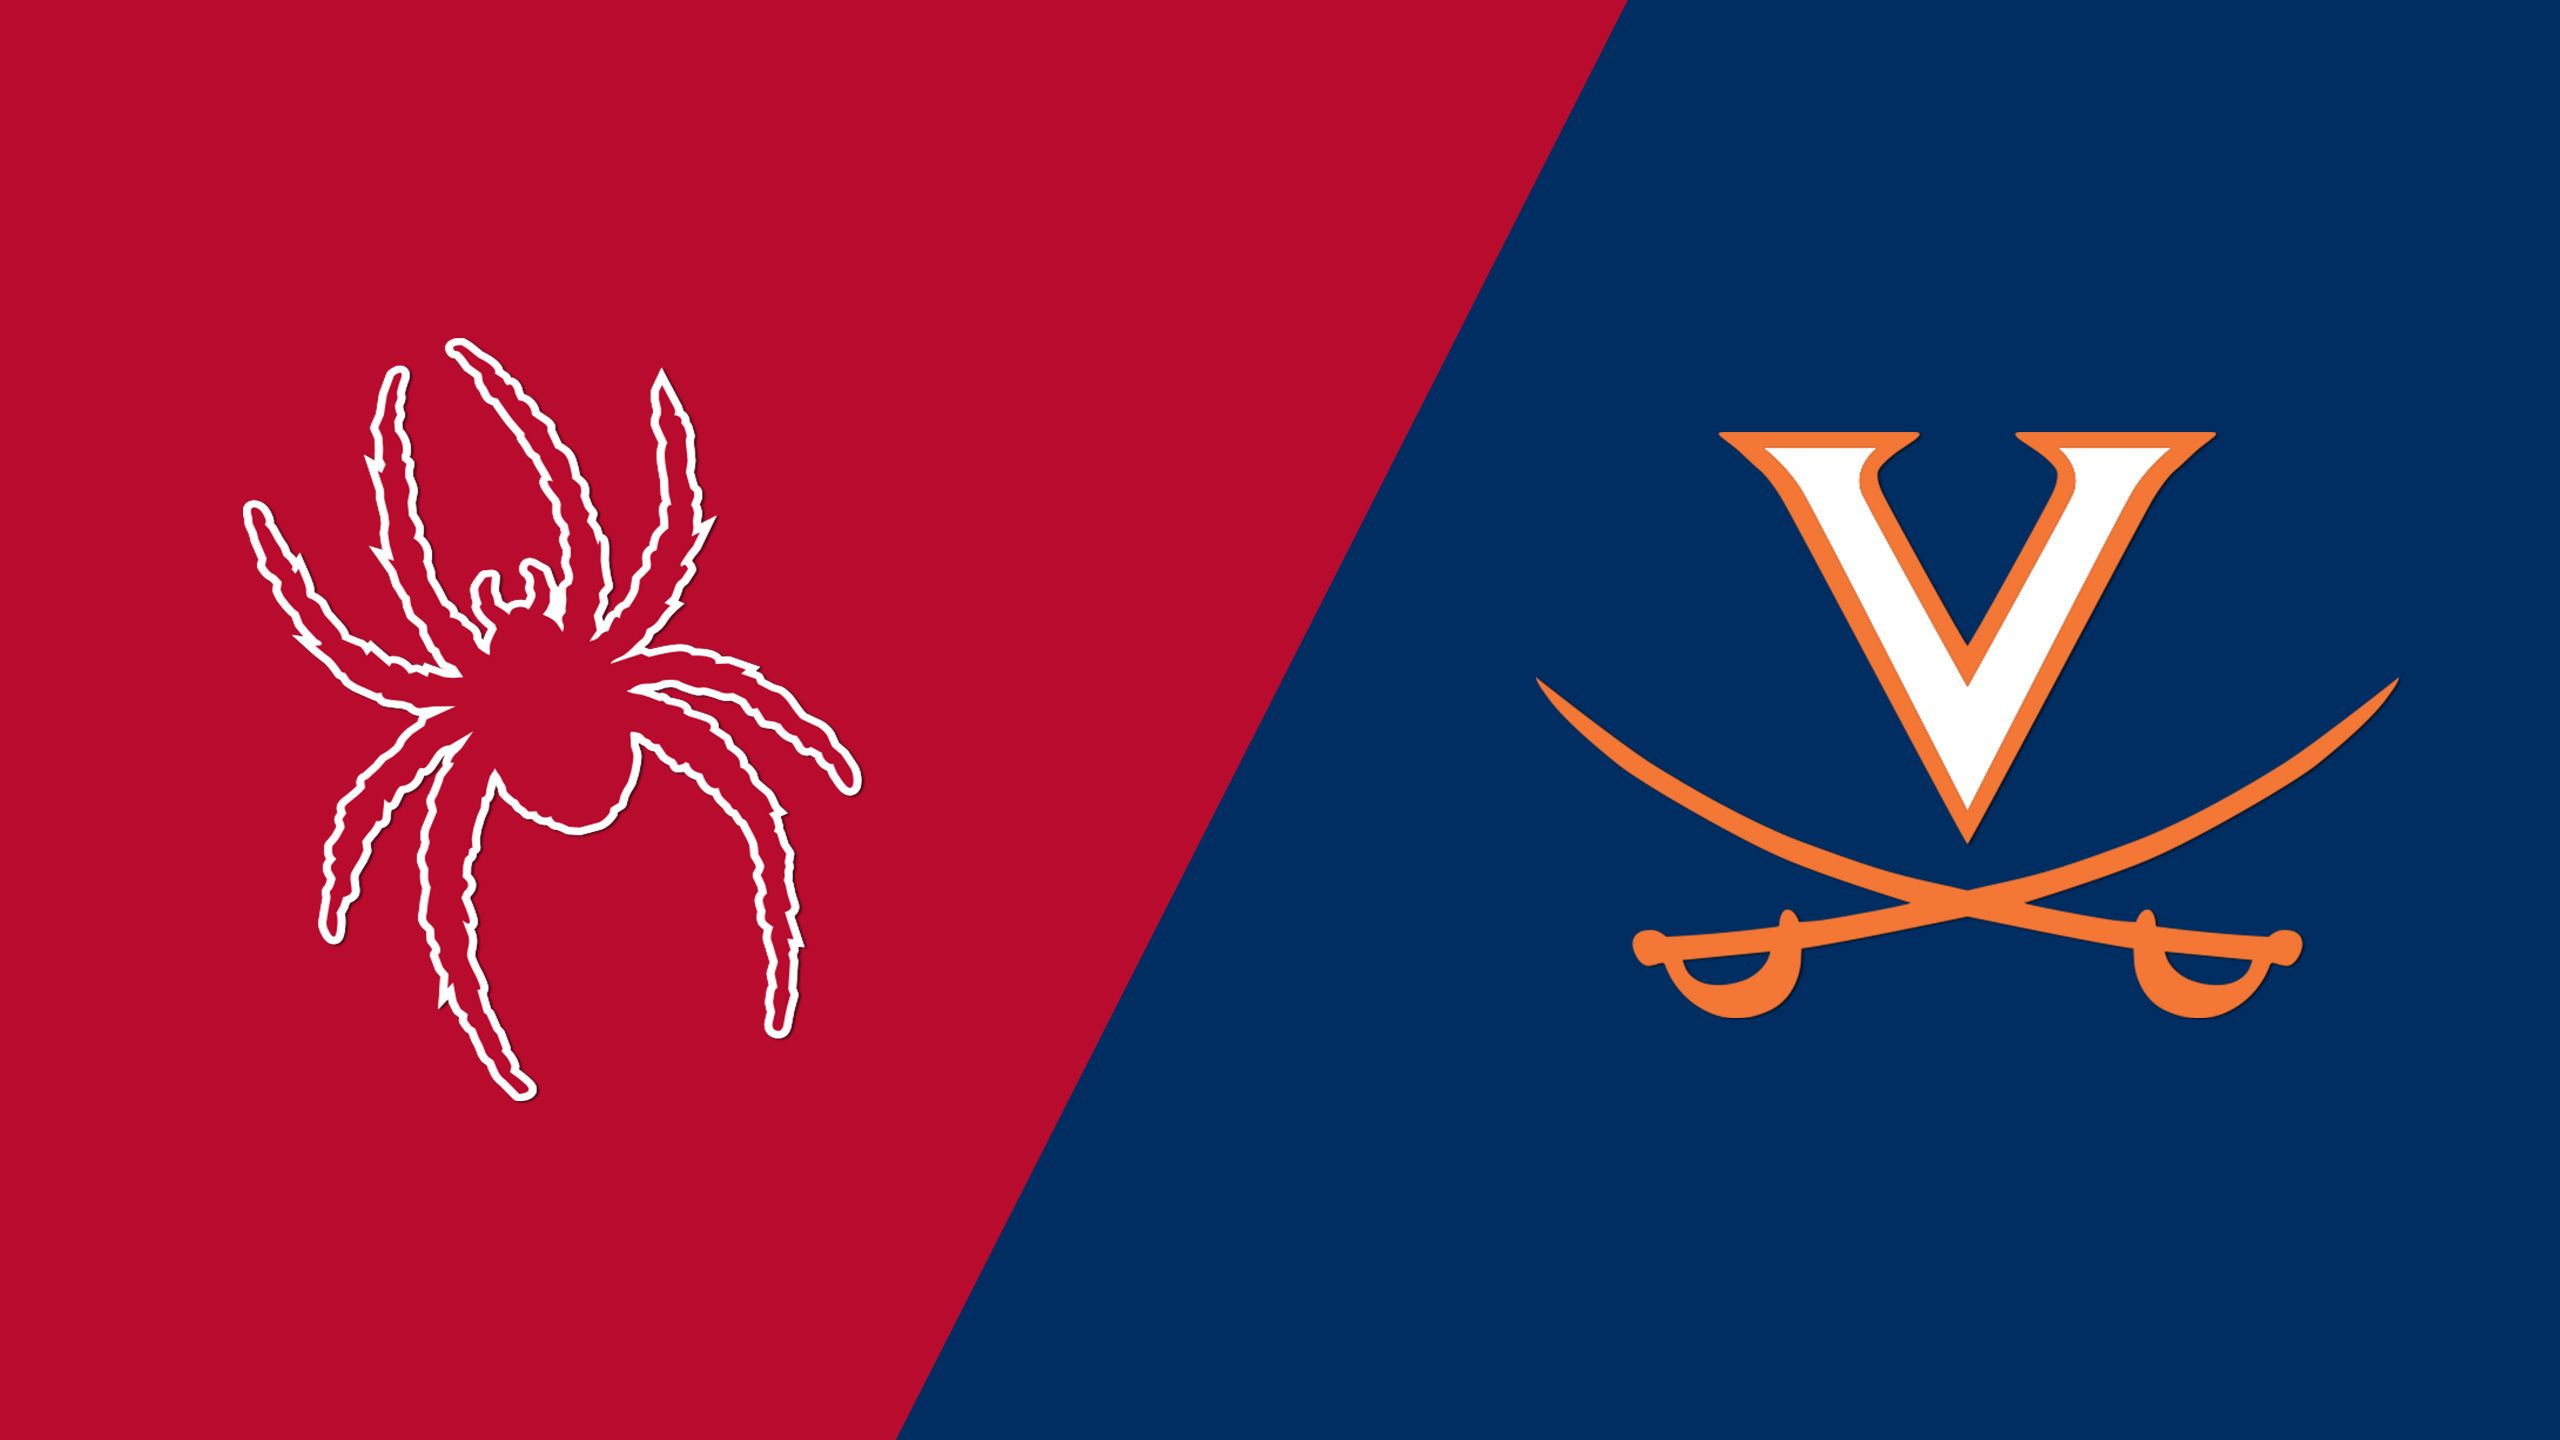 Richmond vs. Virginia (Baseball)